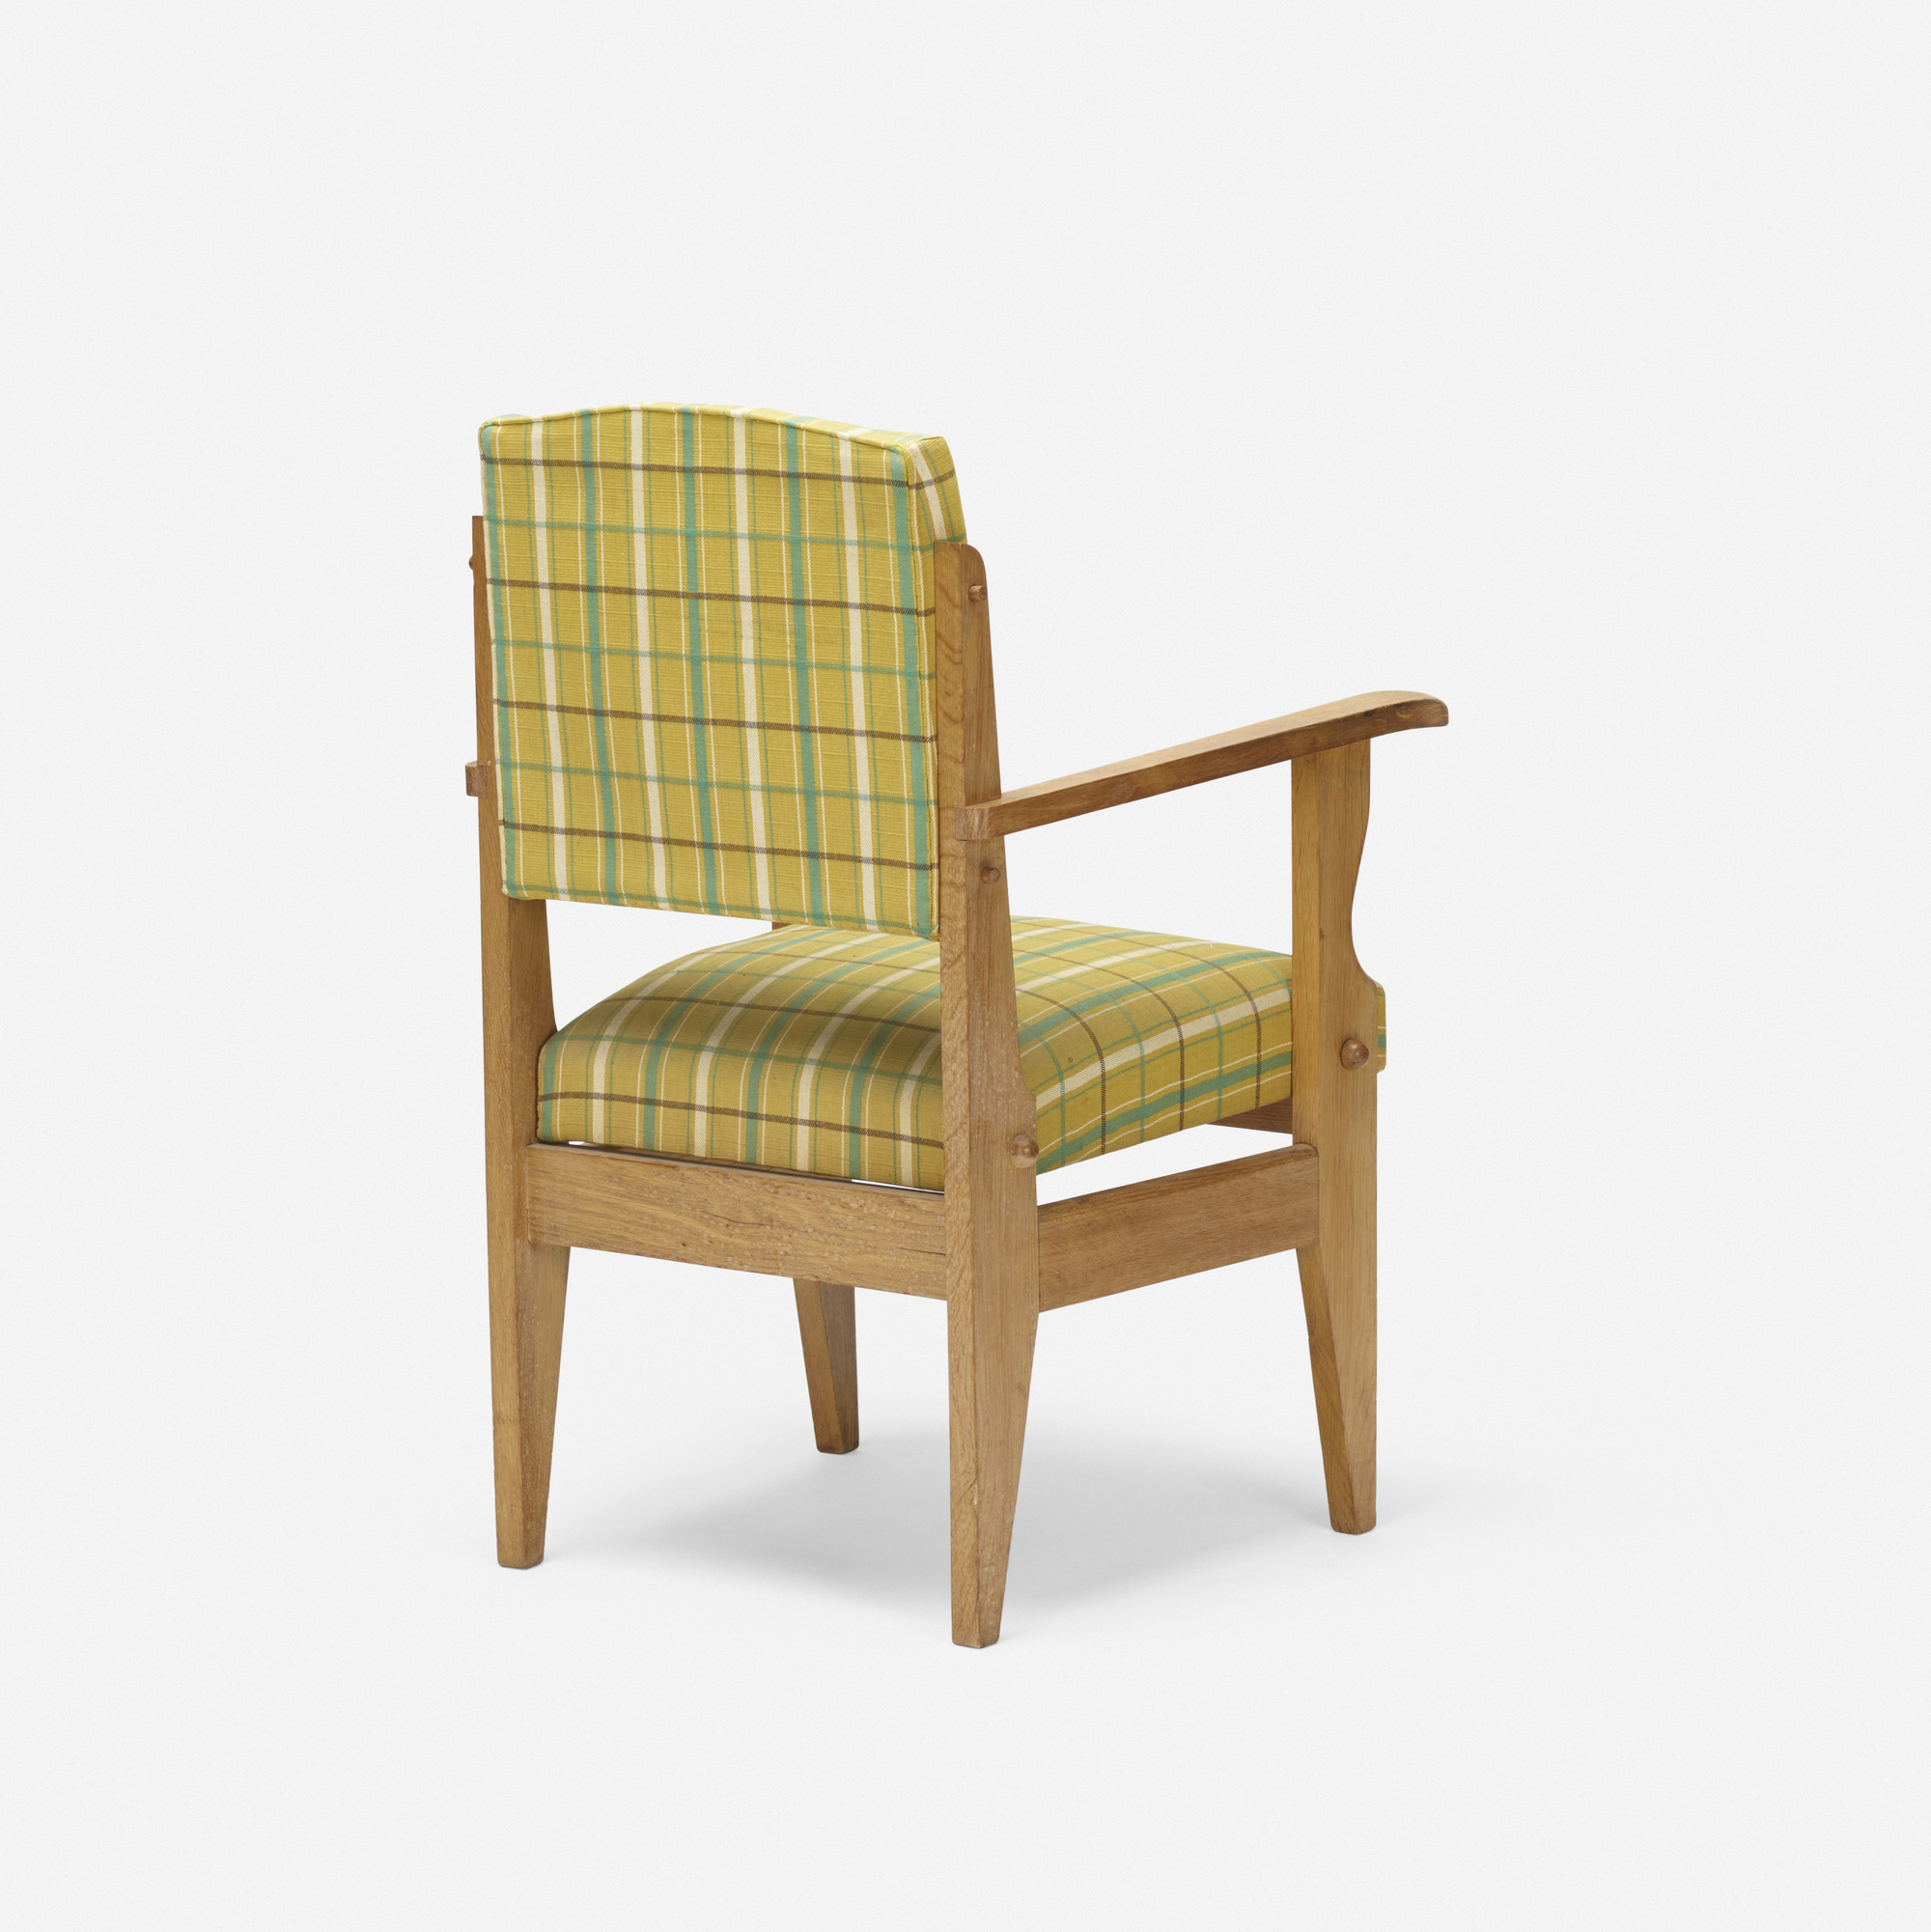 416: Robert Guillerme and Jacques Chambron / armchair (2 of 3)